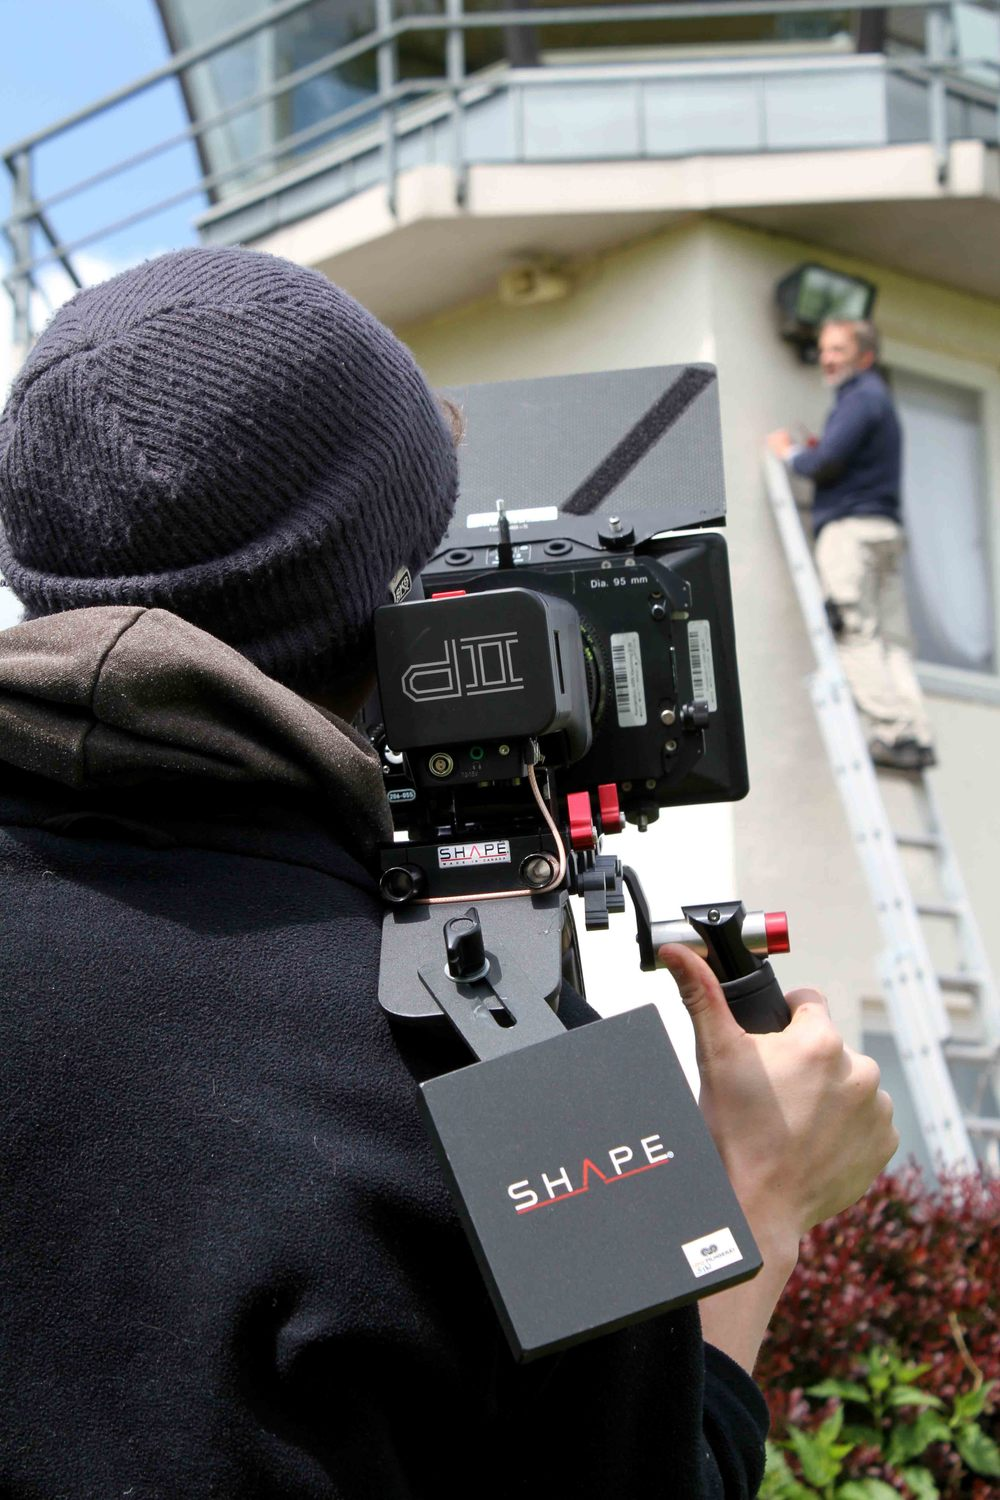 And action! The first take has been shot.